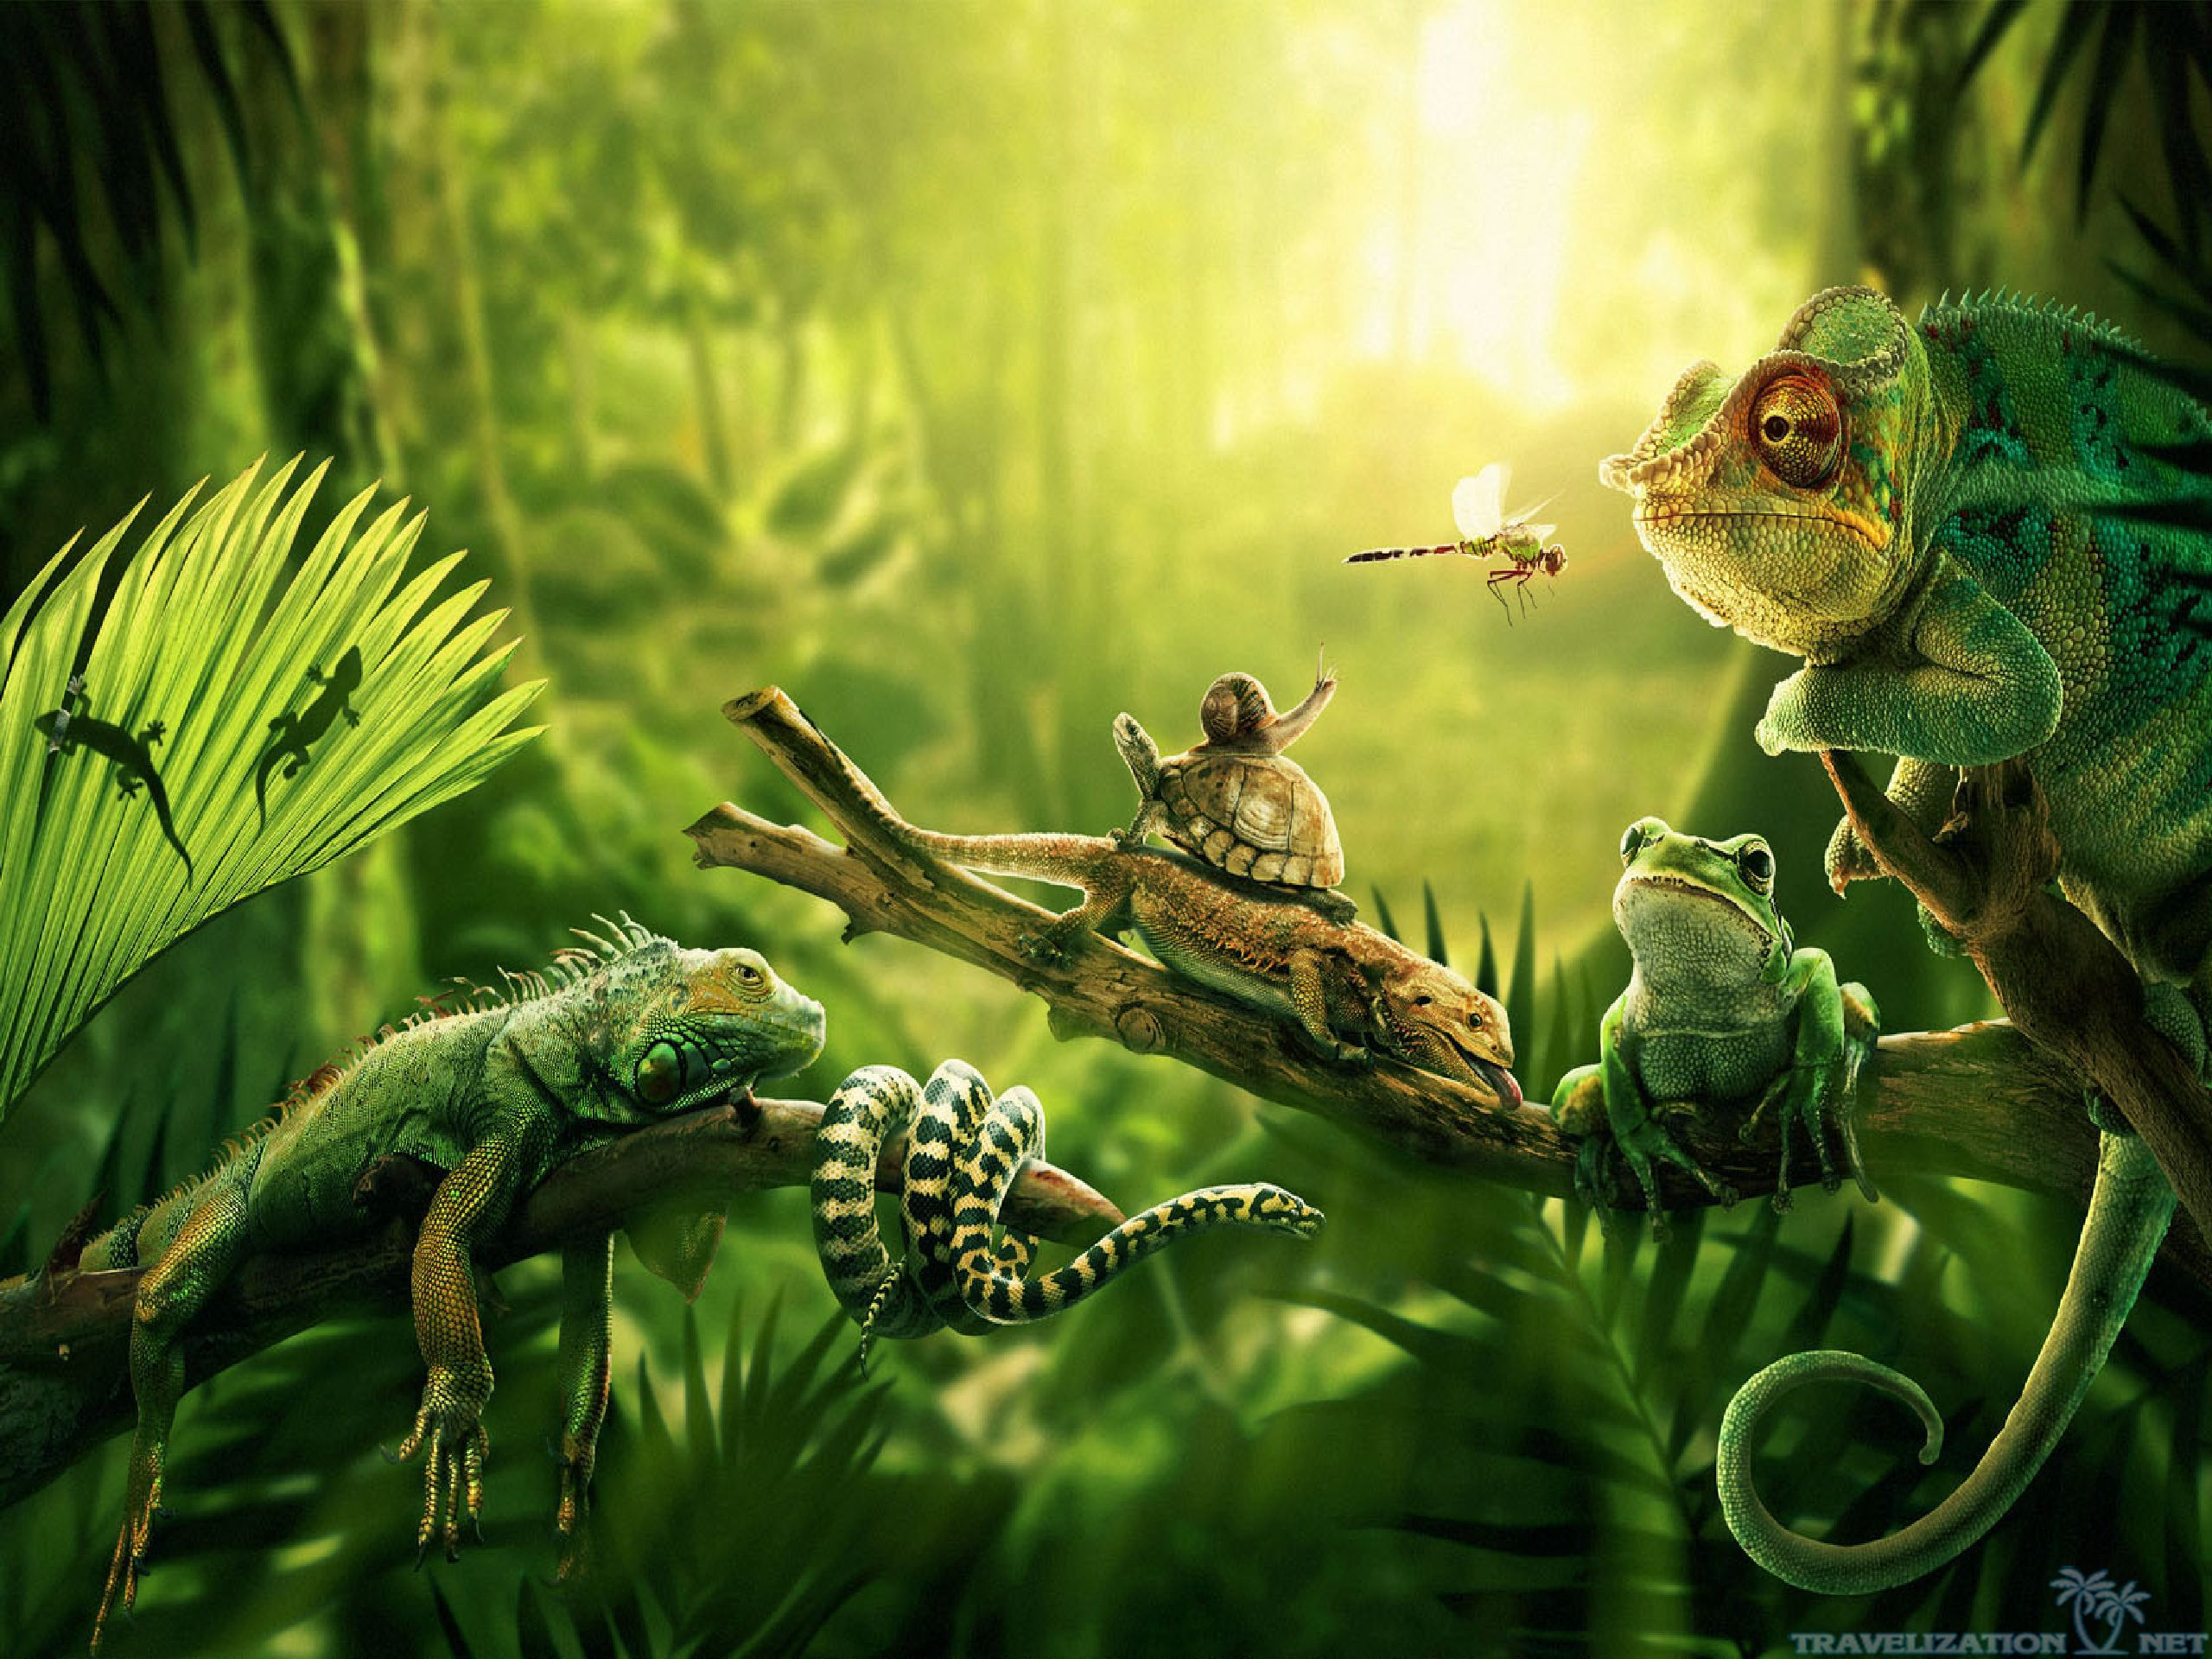 7 Kbytes V Jungle Animal Wallpaper 4k 2560x1920 Wallpaper Teahub Io